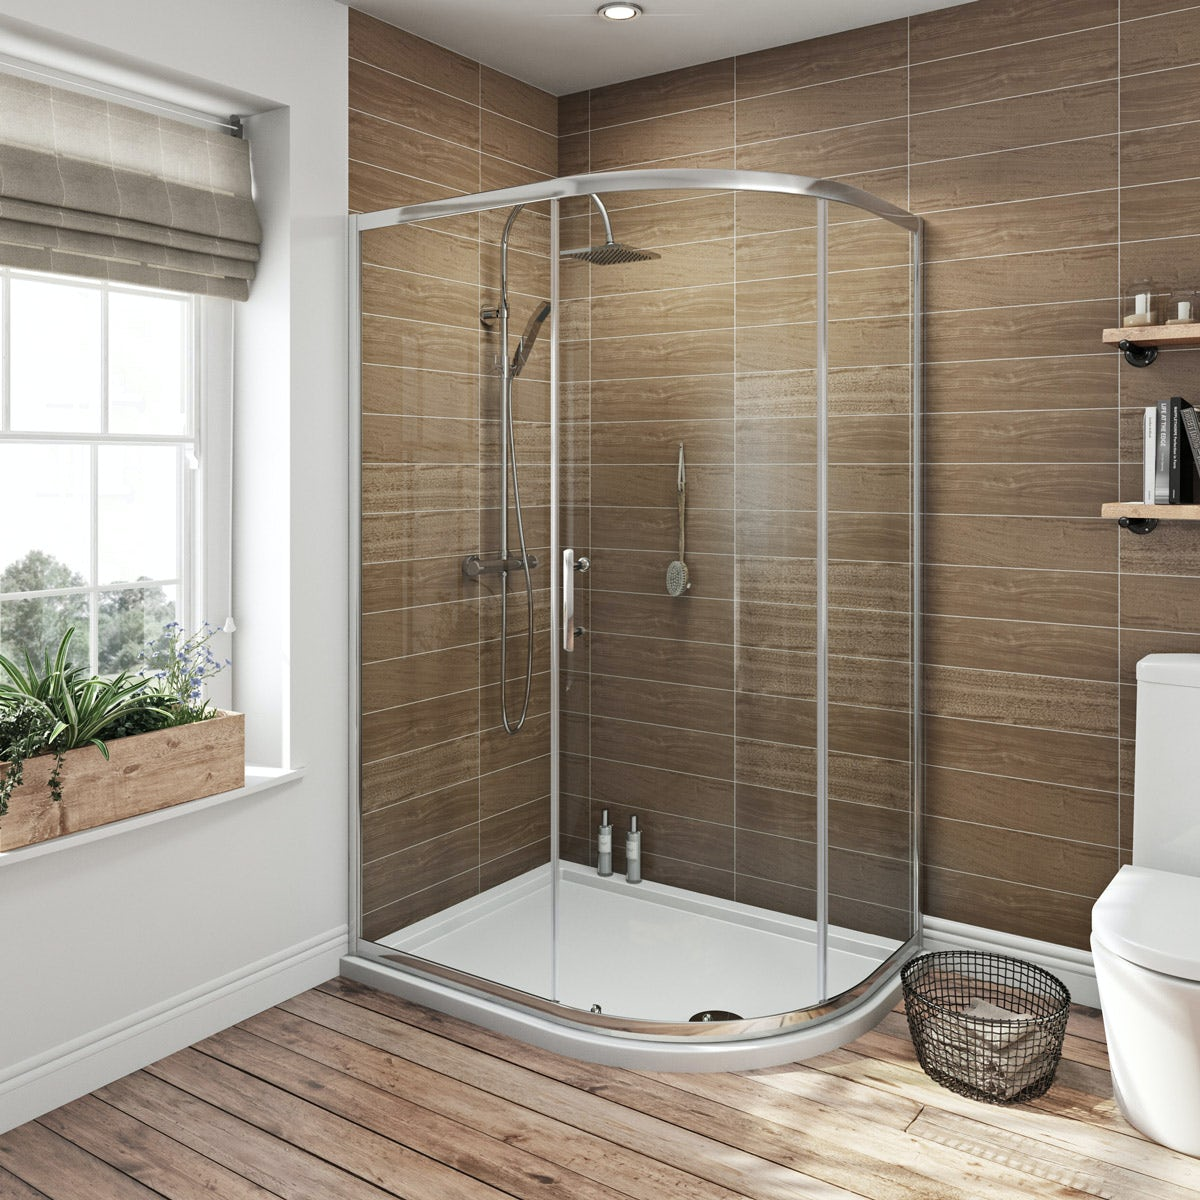 6mm single door offset quadrant shower enclosure 900 x 760